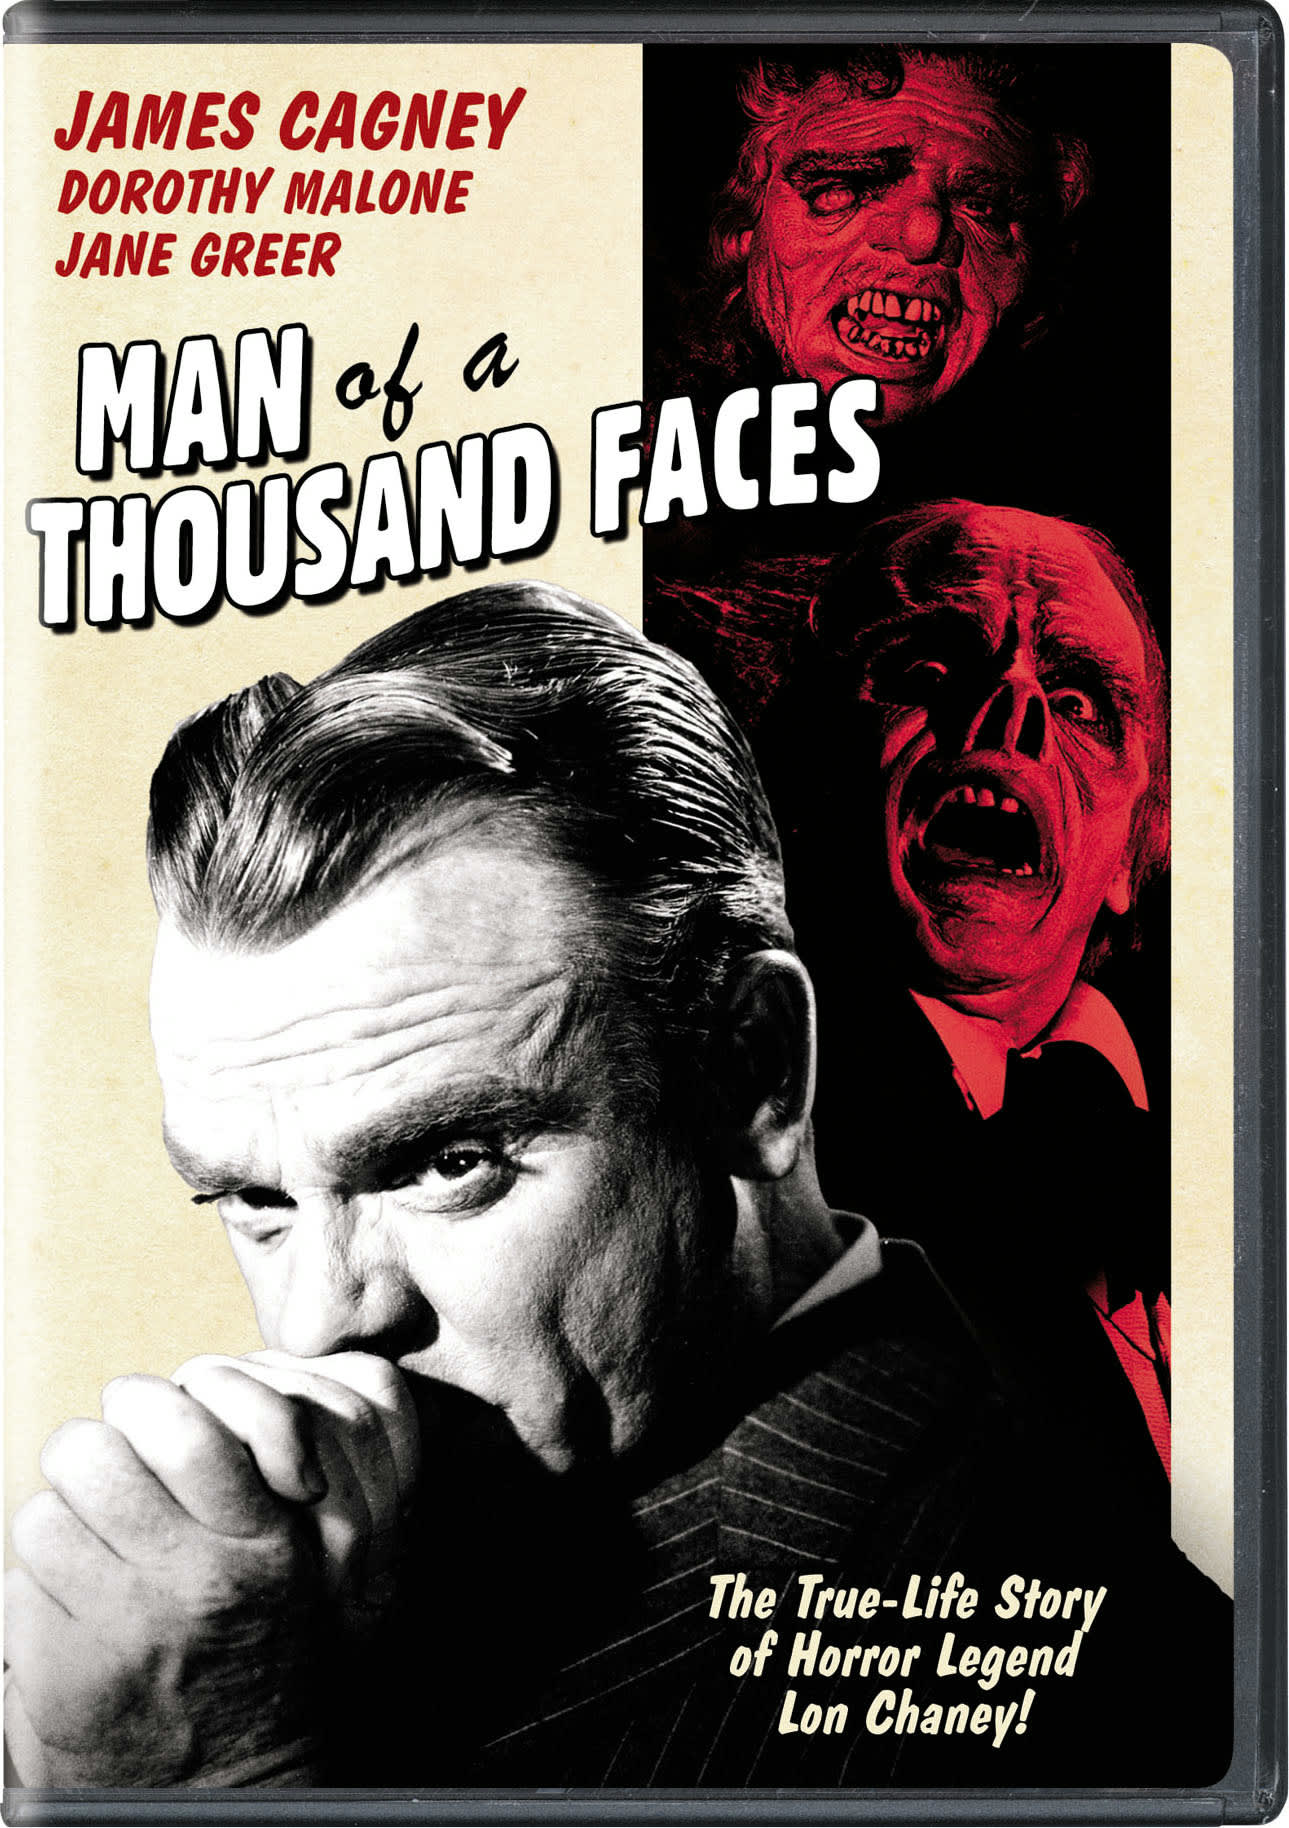 Man of a Thousand Faces [DVD]